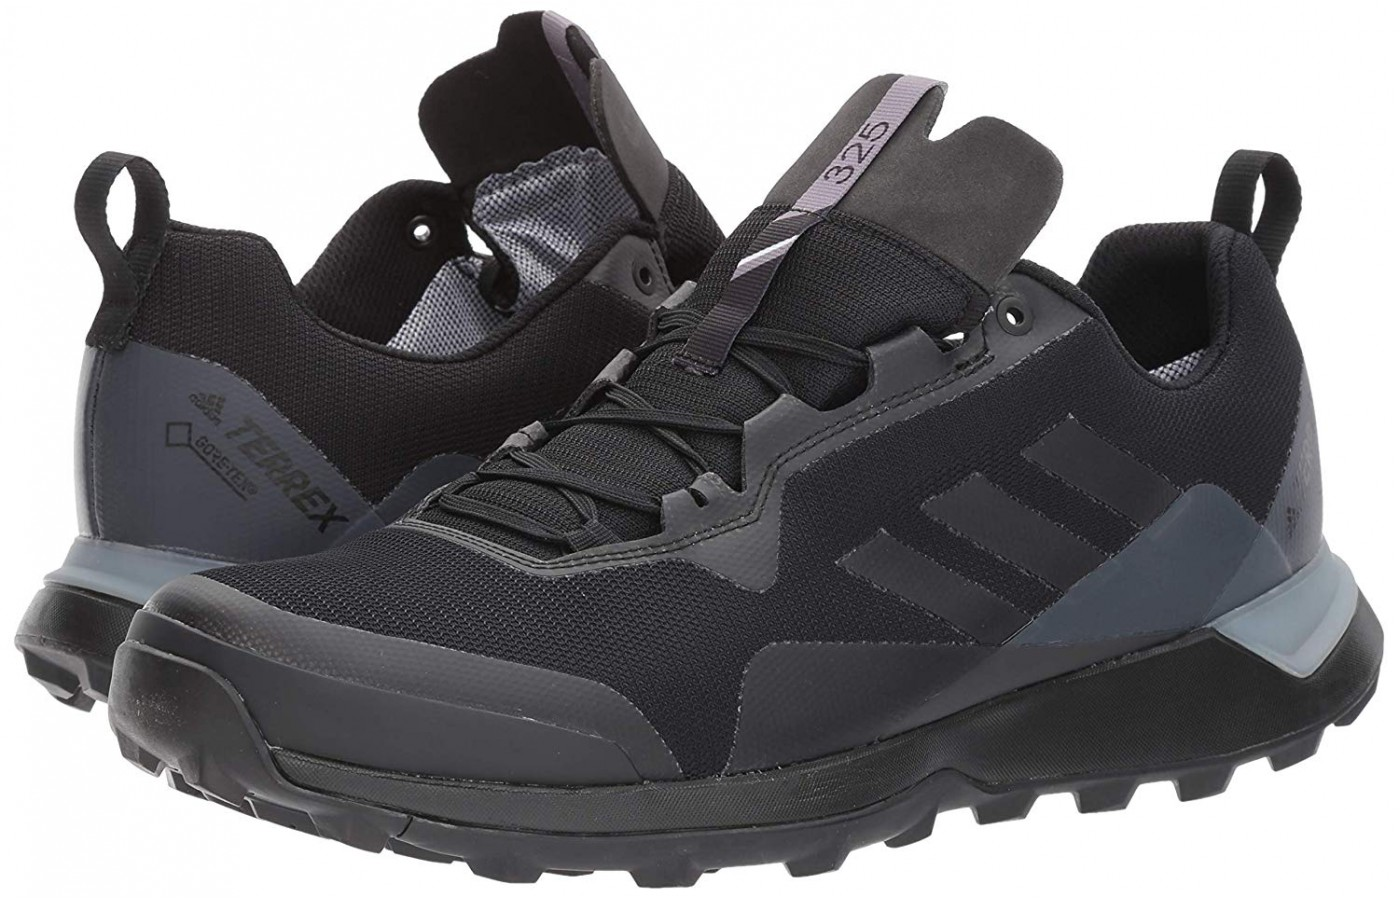 Adidas Terrex CMTK GTX: To Buy or Not in 2020 | TheGearHunt